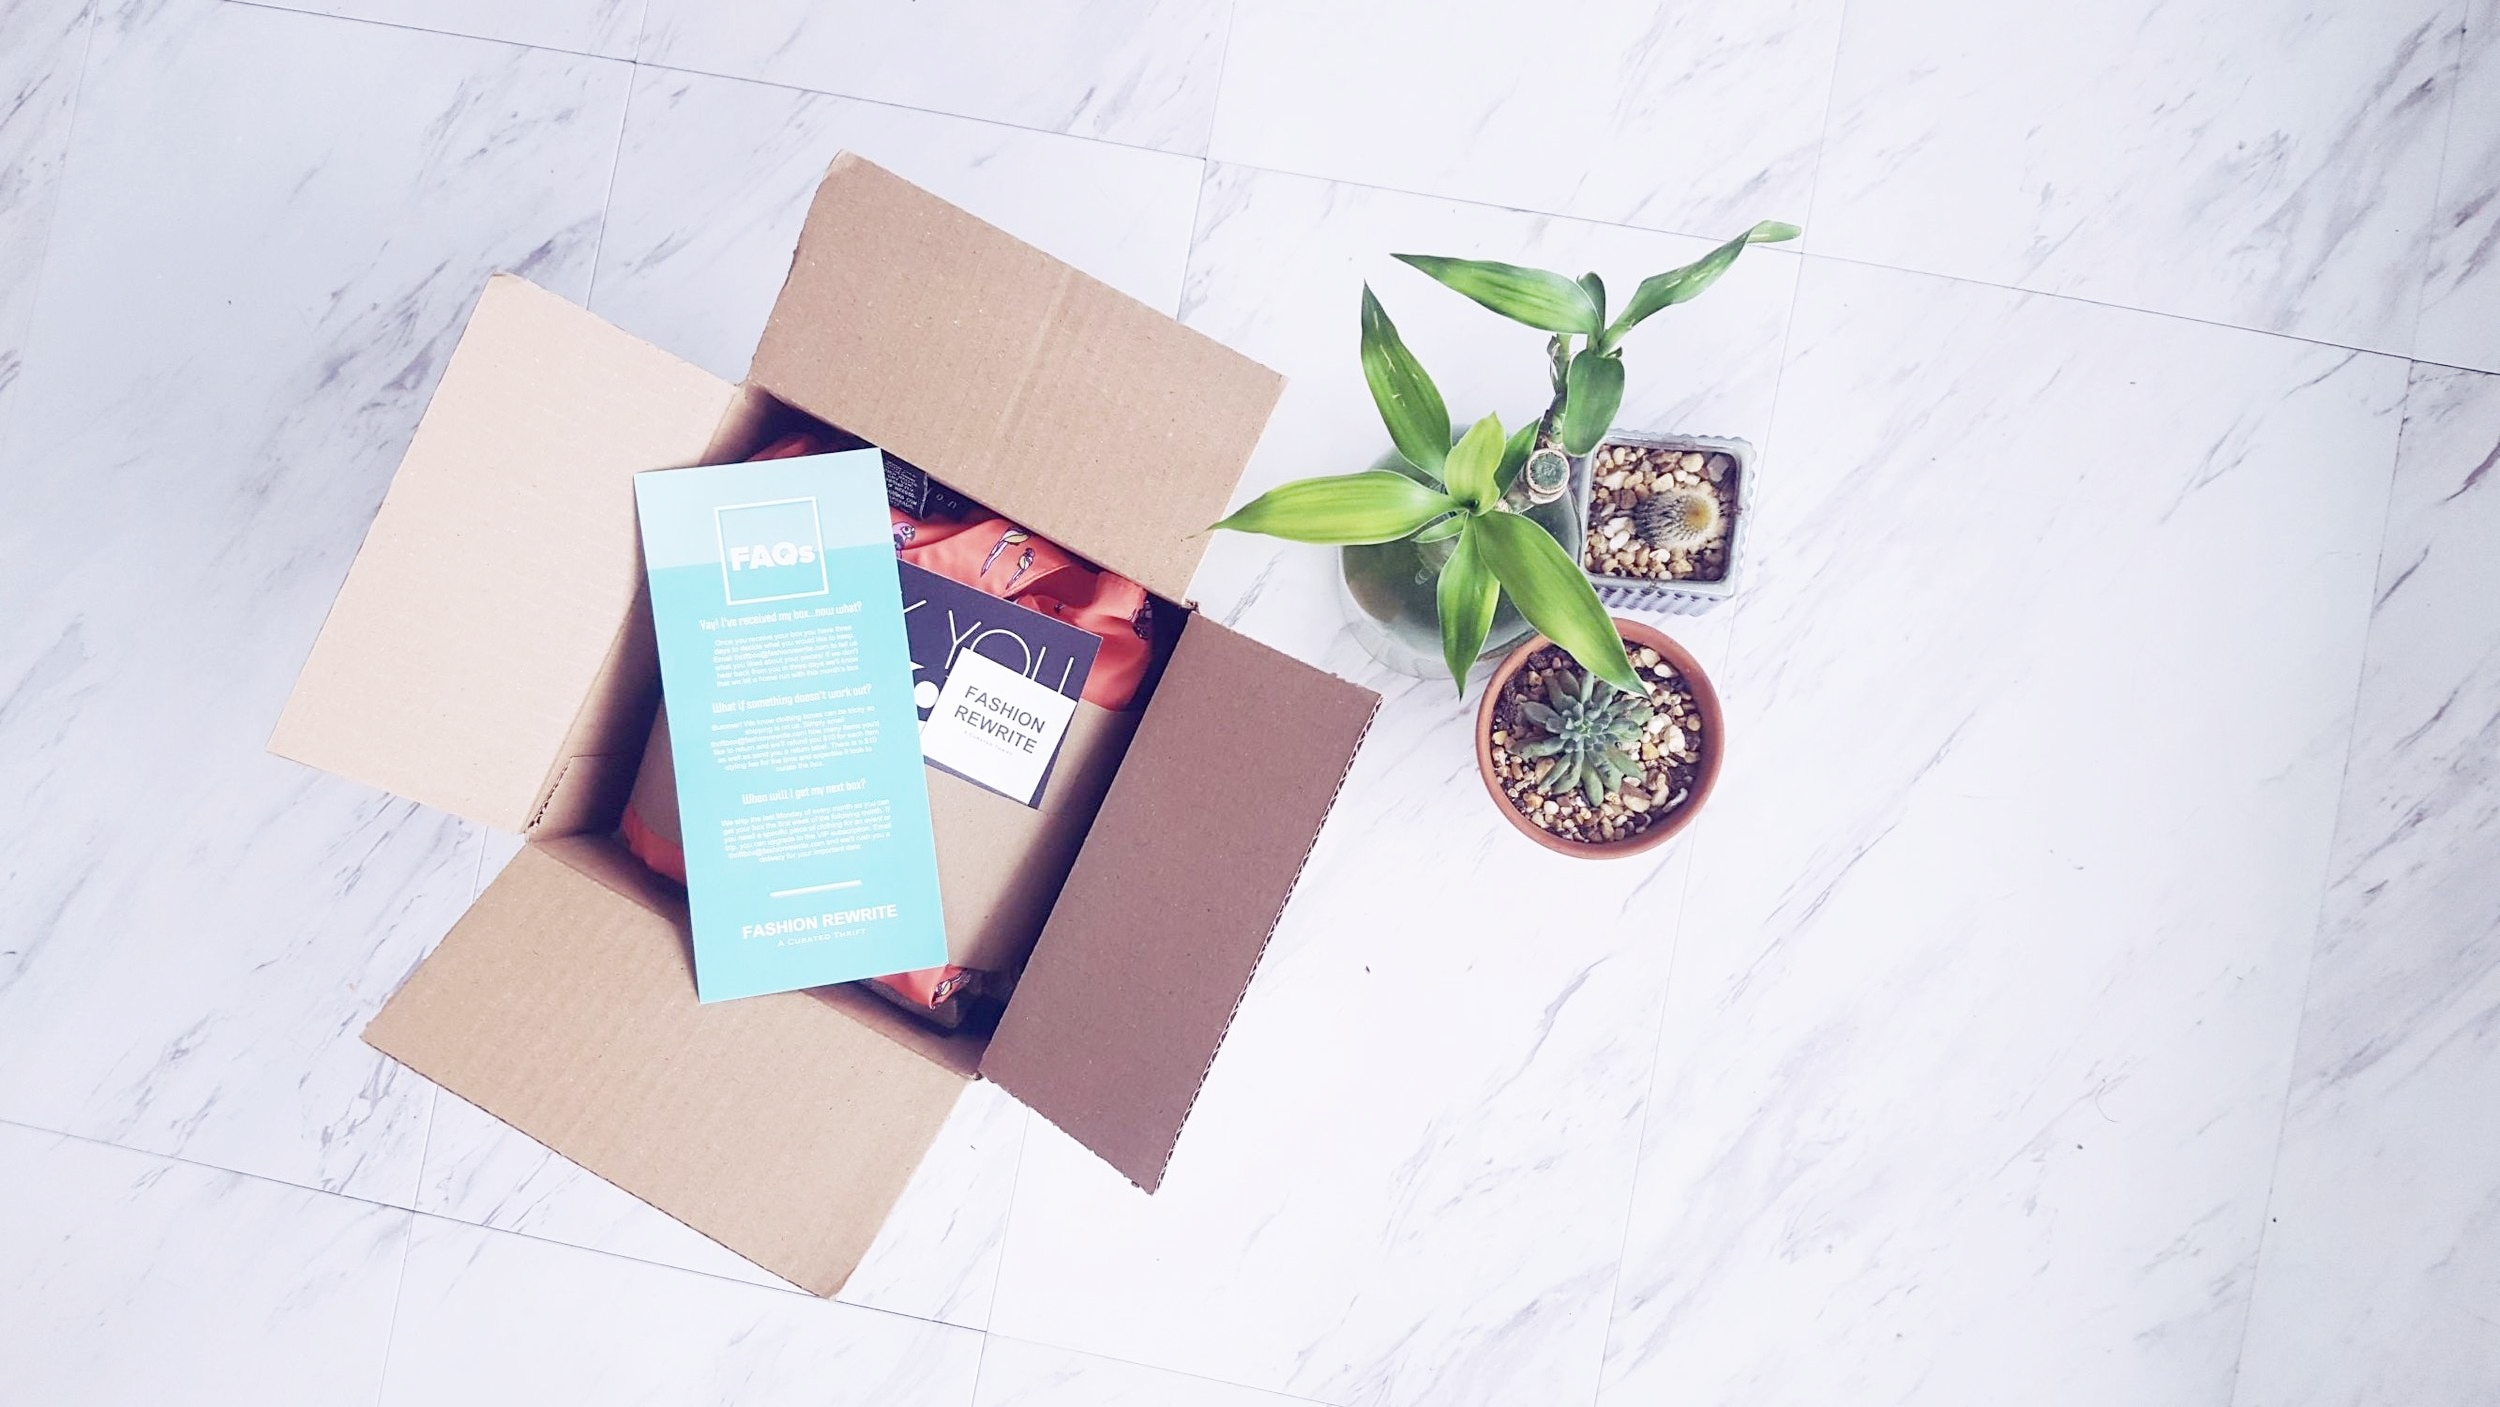 Box with Plant.jpg